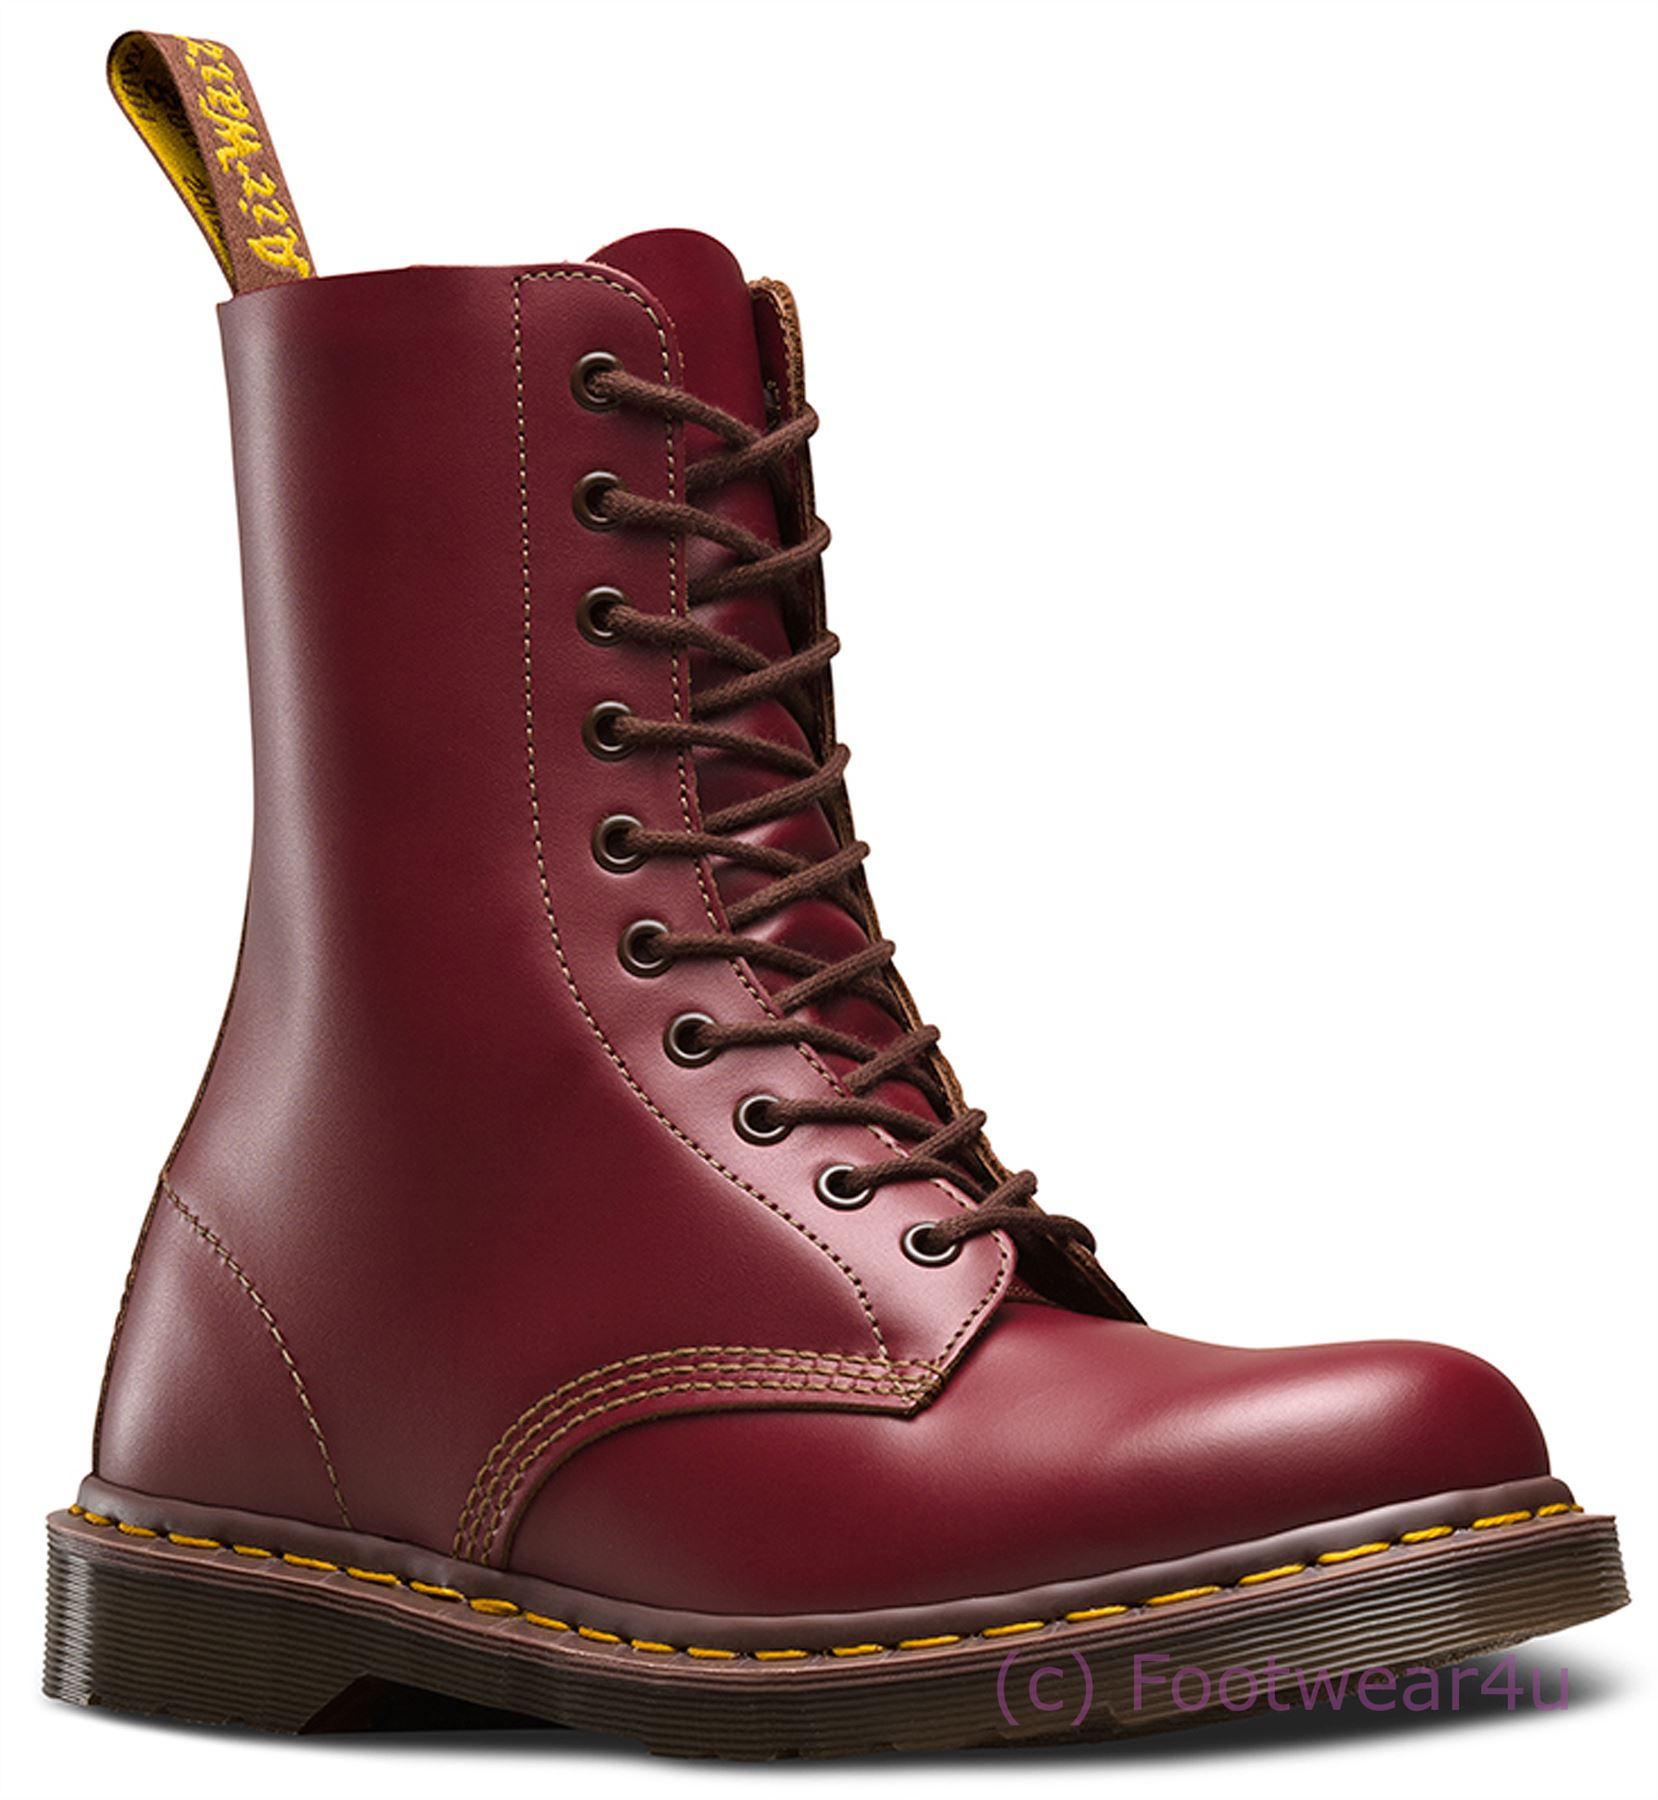 Dr martens 1490 vintage made in england quilon leather 10 for Mode in england